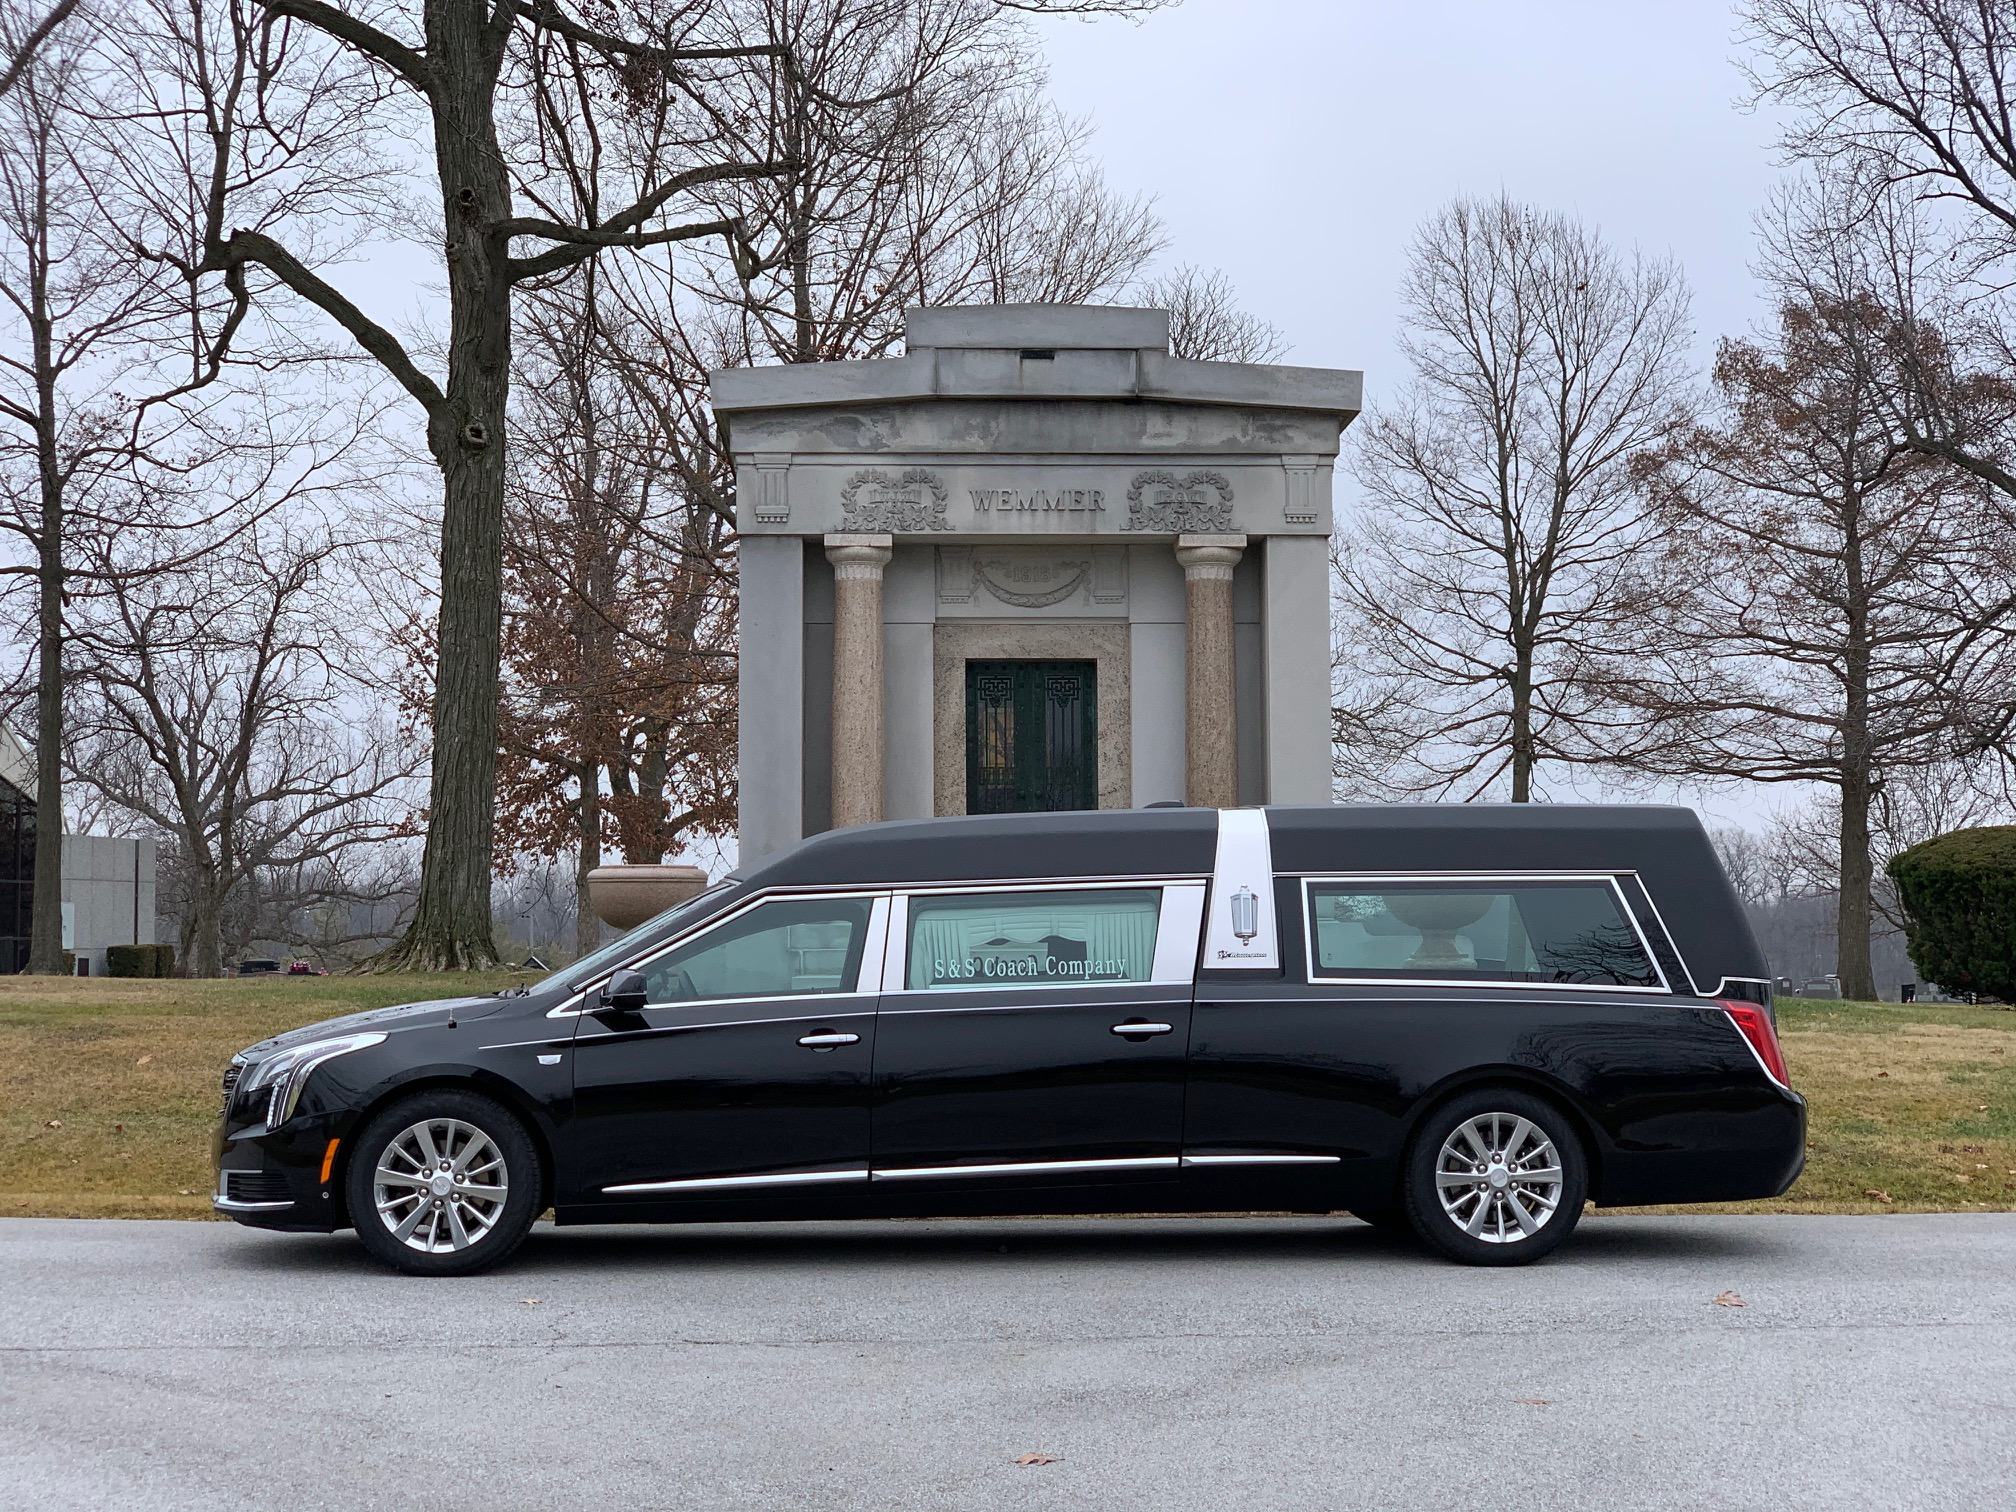 2019 Cadillac S&S Masterpiece Coach - Limo Style Glass